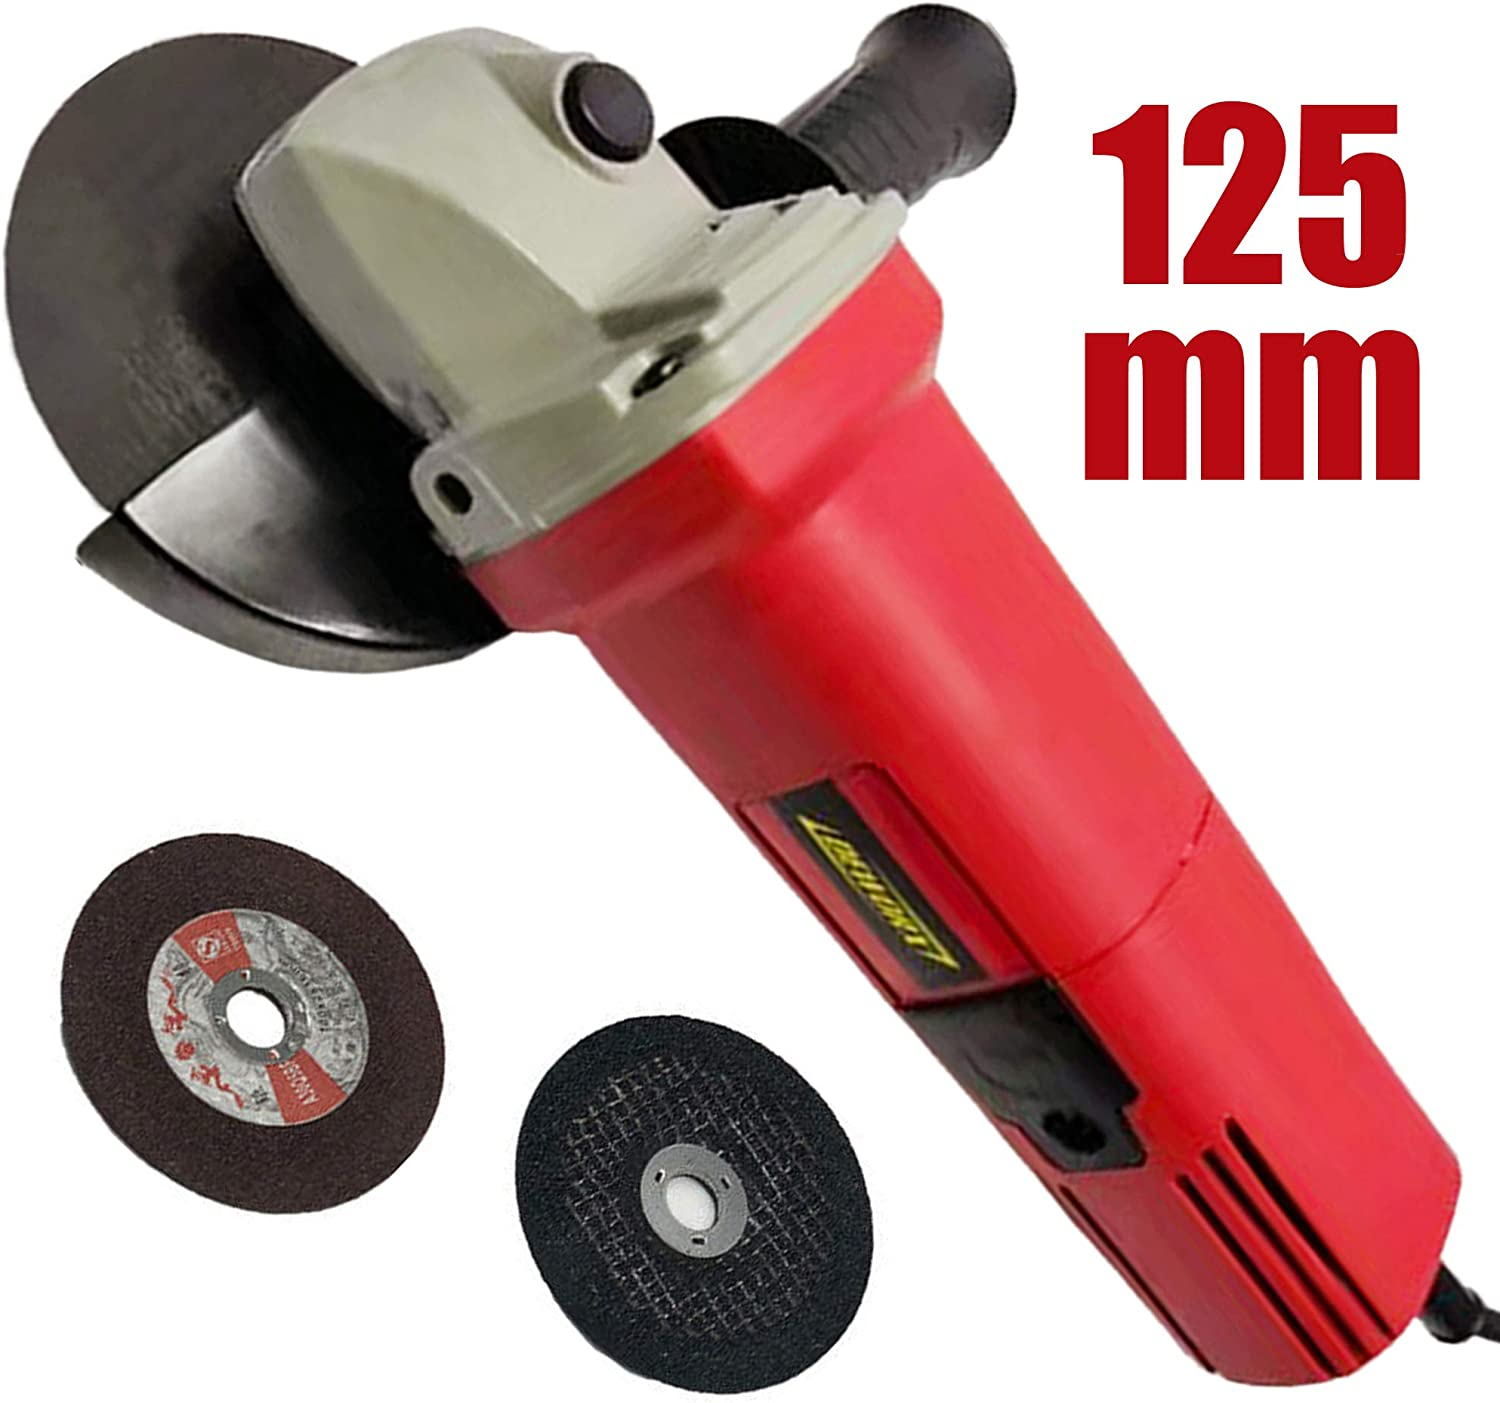 850W Corded Angle Grinder 5 inch Angle Grinder 125mm Grinding Disc with 2 Blade